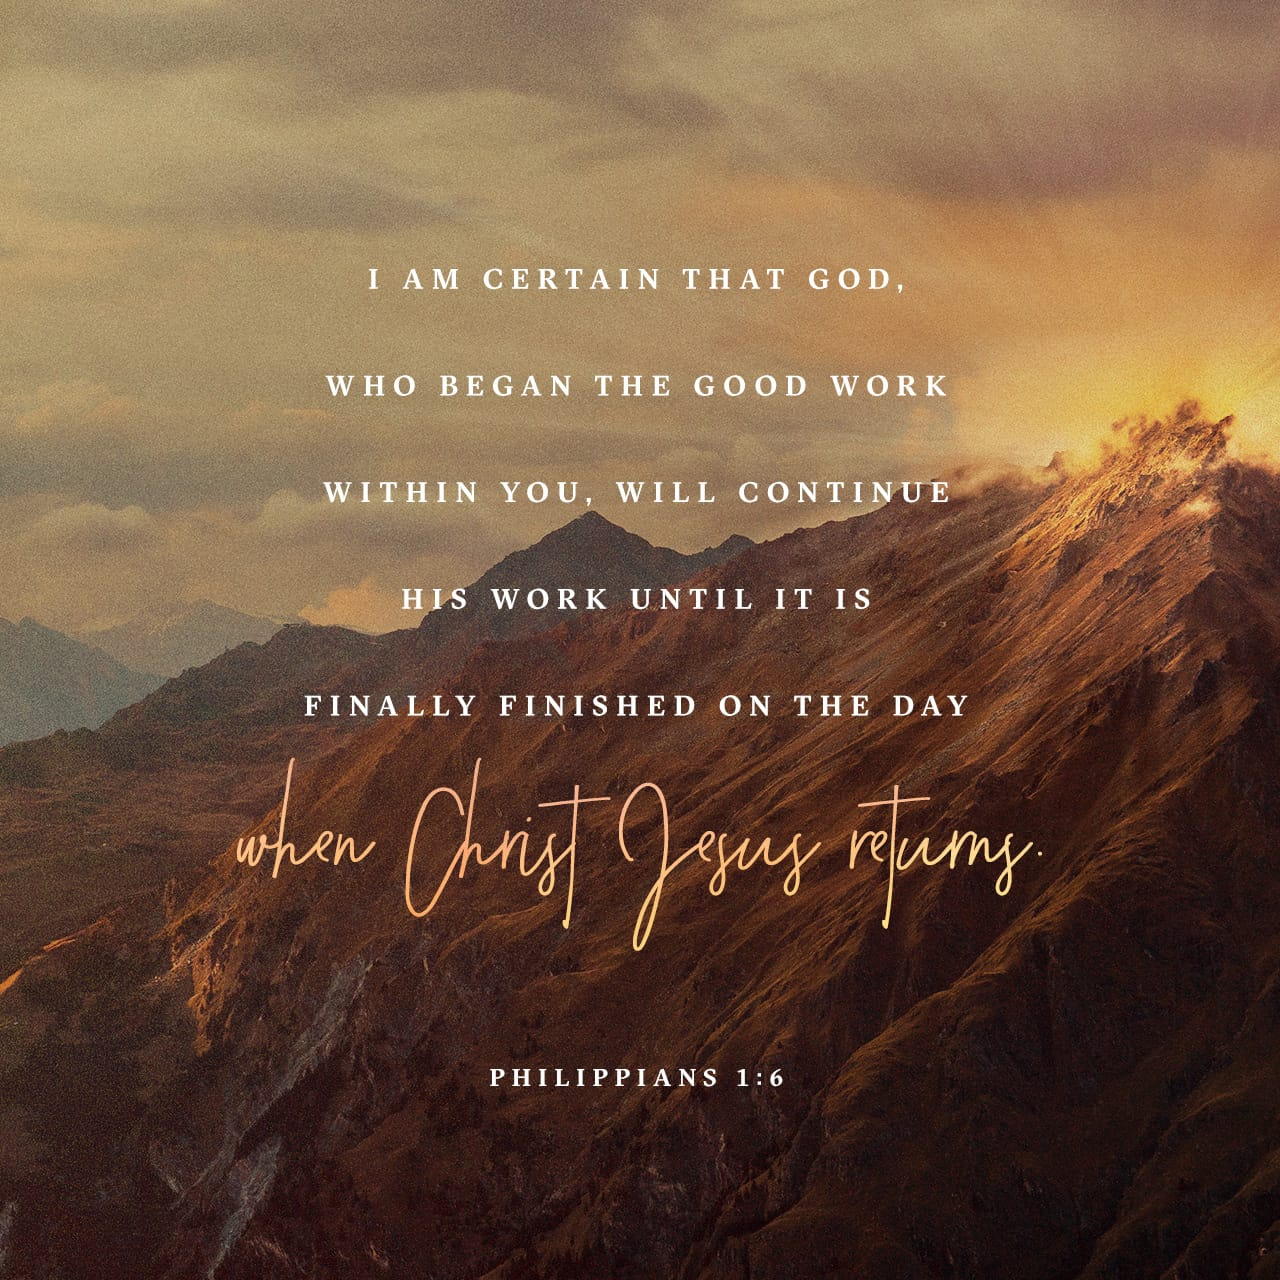 philippians 1 6 being confident of this that he who began a good